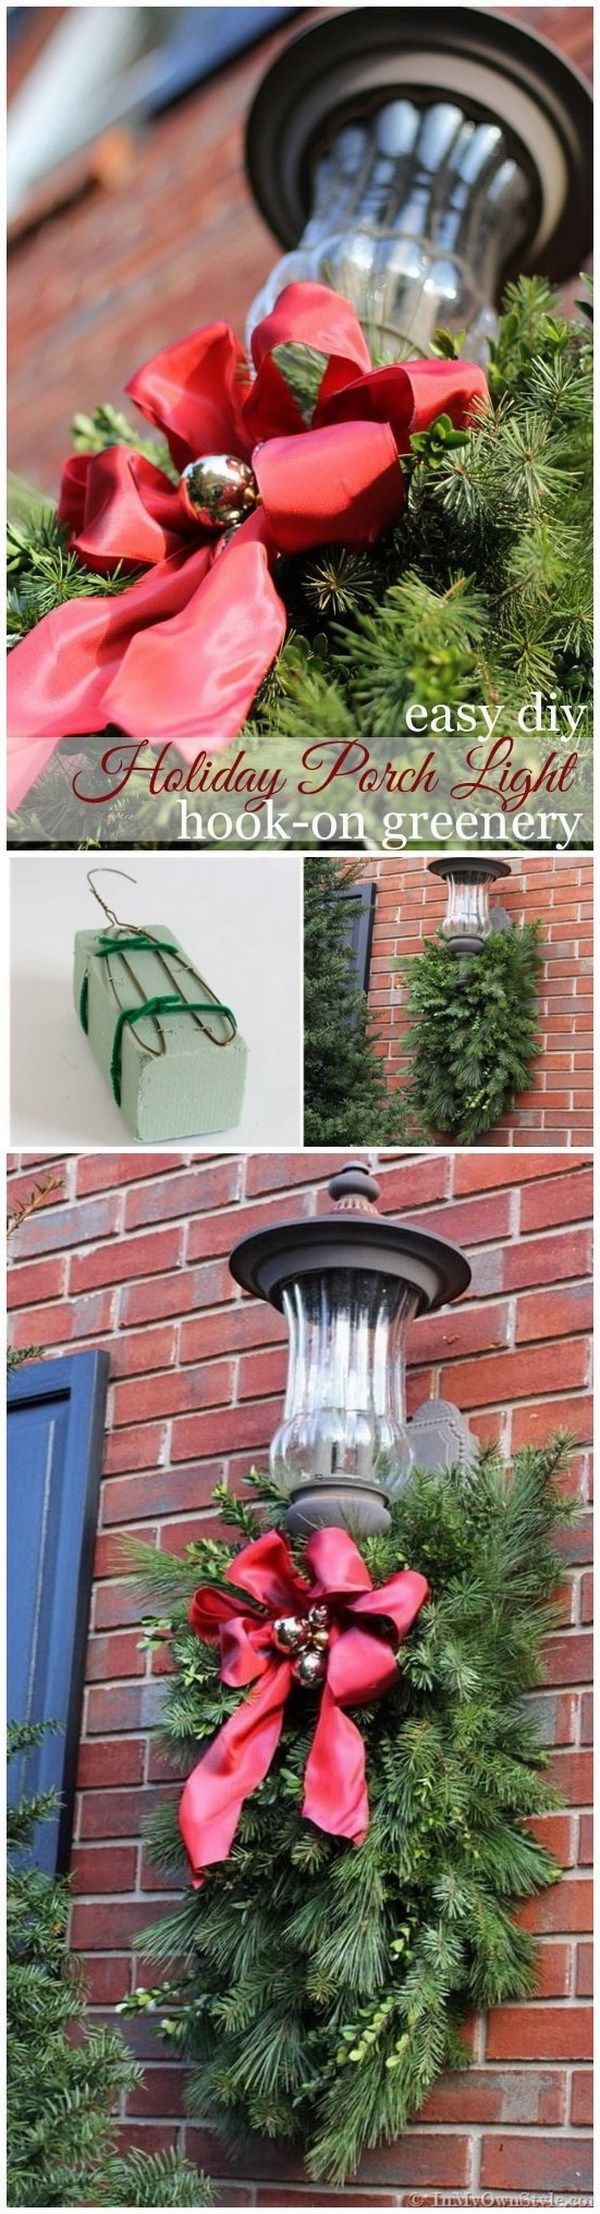 Diy outdoor christmas decorations  Made greenery sprays with Christmas tree cuttings to hang it under